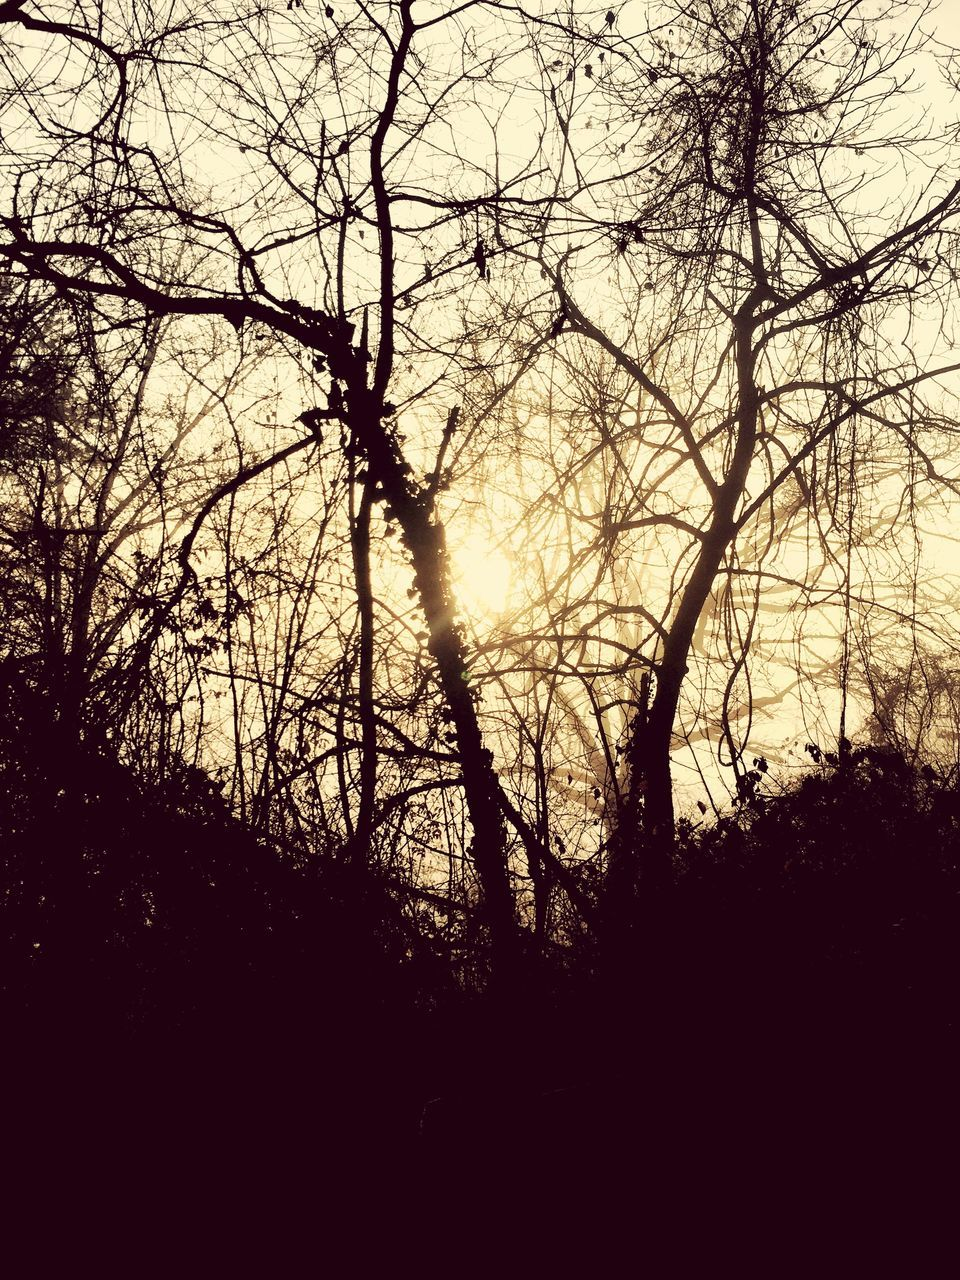 tree, nature, silhouette, beauty in nature, tranquility, forest, no people, outdoors, tranquil scene, branch, scenics, bare tree, landscape, day, sky